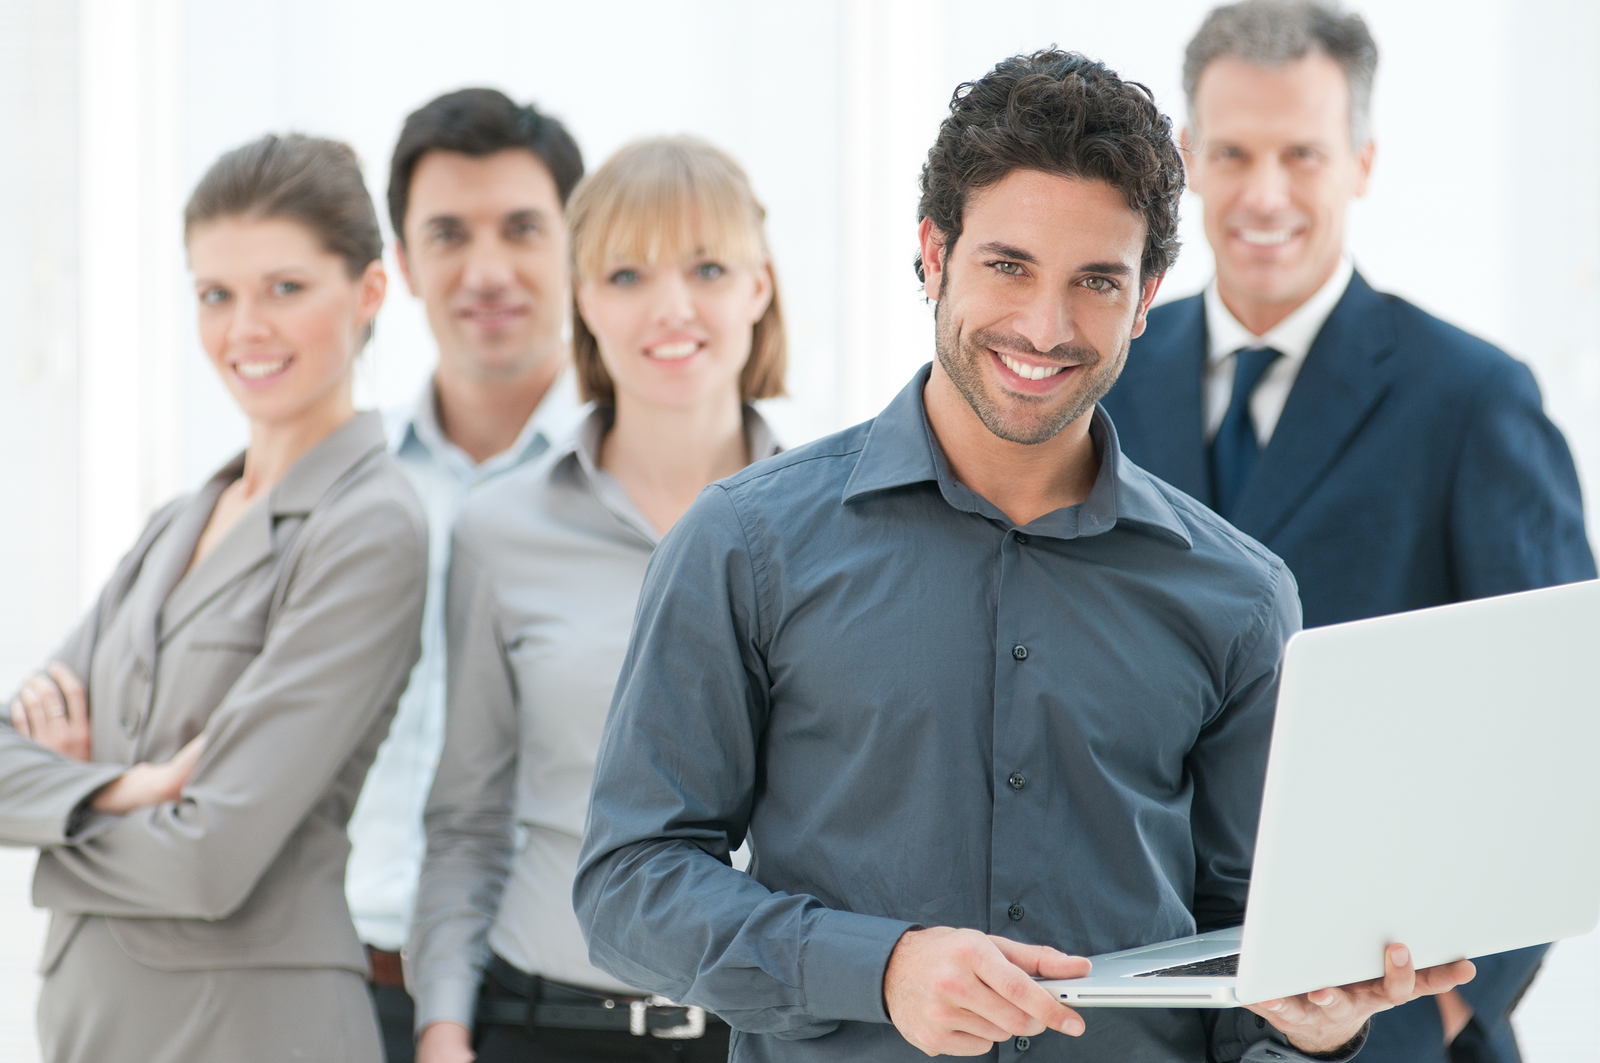 bigstock-Happy-business-man-holding-a-m-33012347